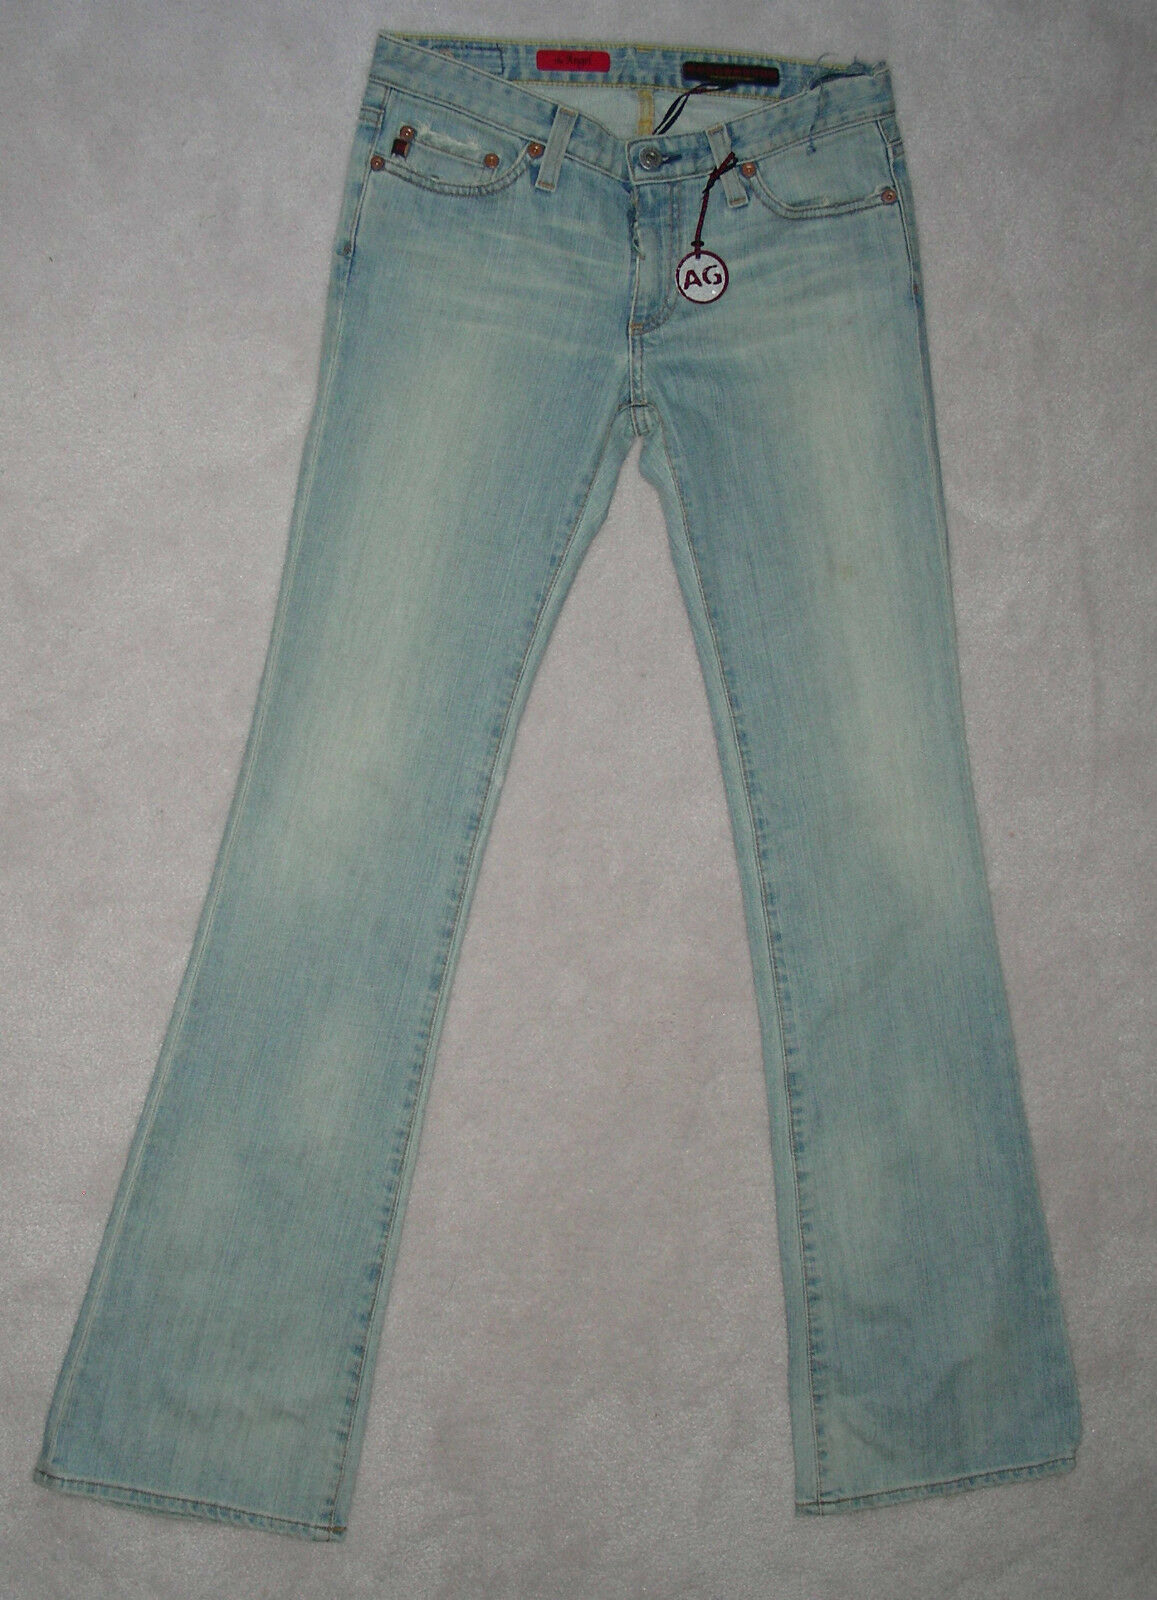 NWT Womens AG ADRIANO goldSCHMIED bluee DISTRESSED DENIM JEANS Low 27 26 25 Leg32